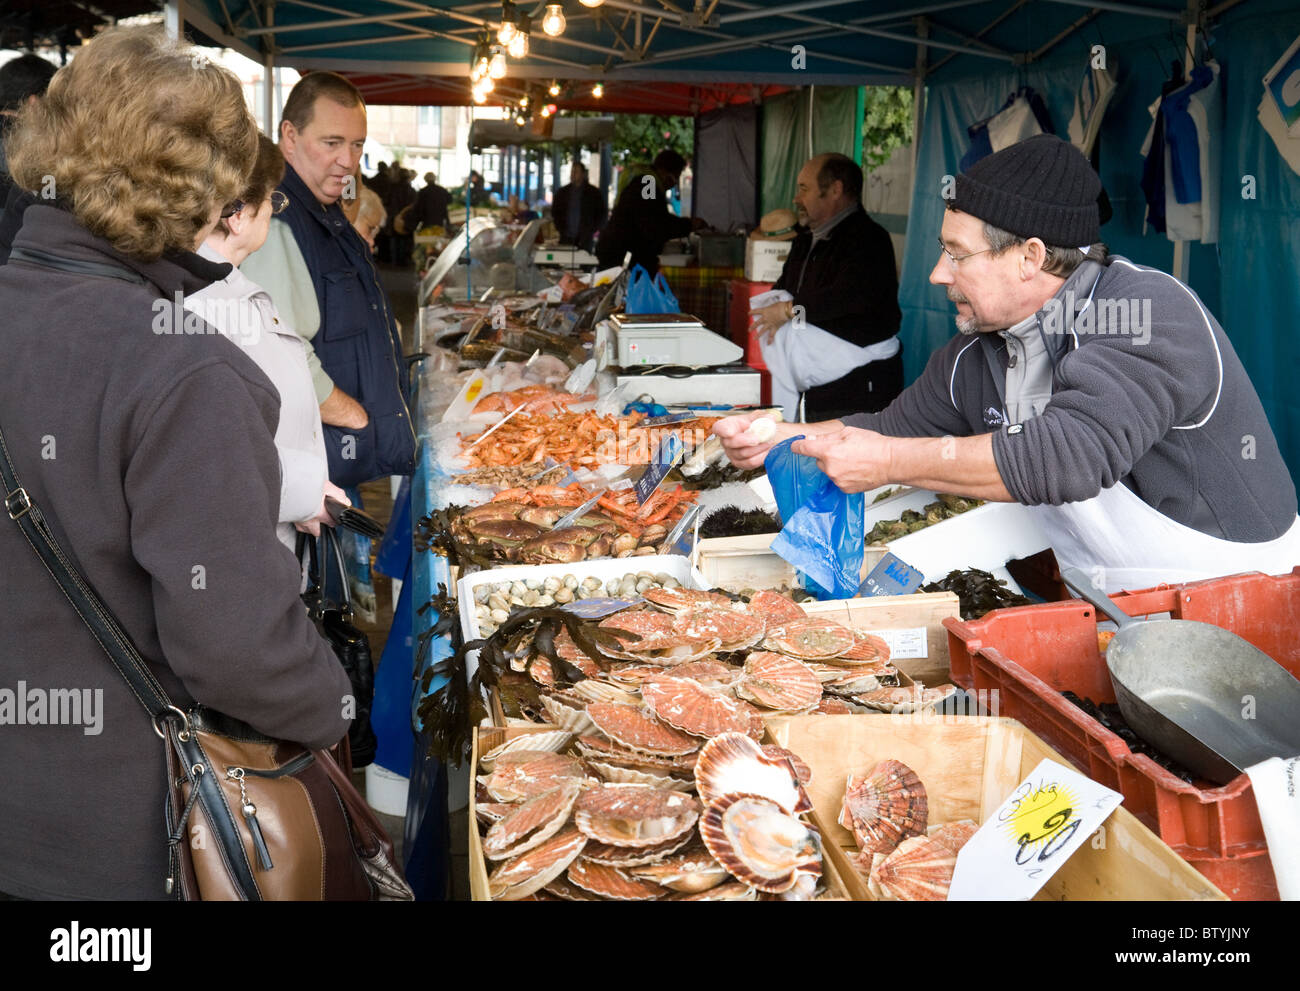 A fishmonger selling fish in the French market town of Coulommiers,  ile de france Northern France - Stock Image